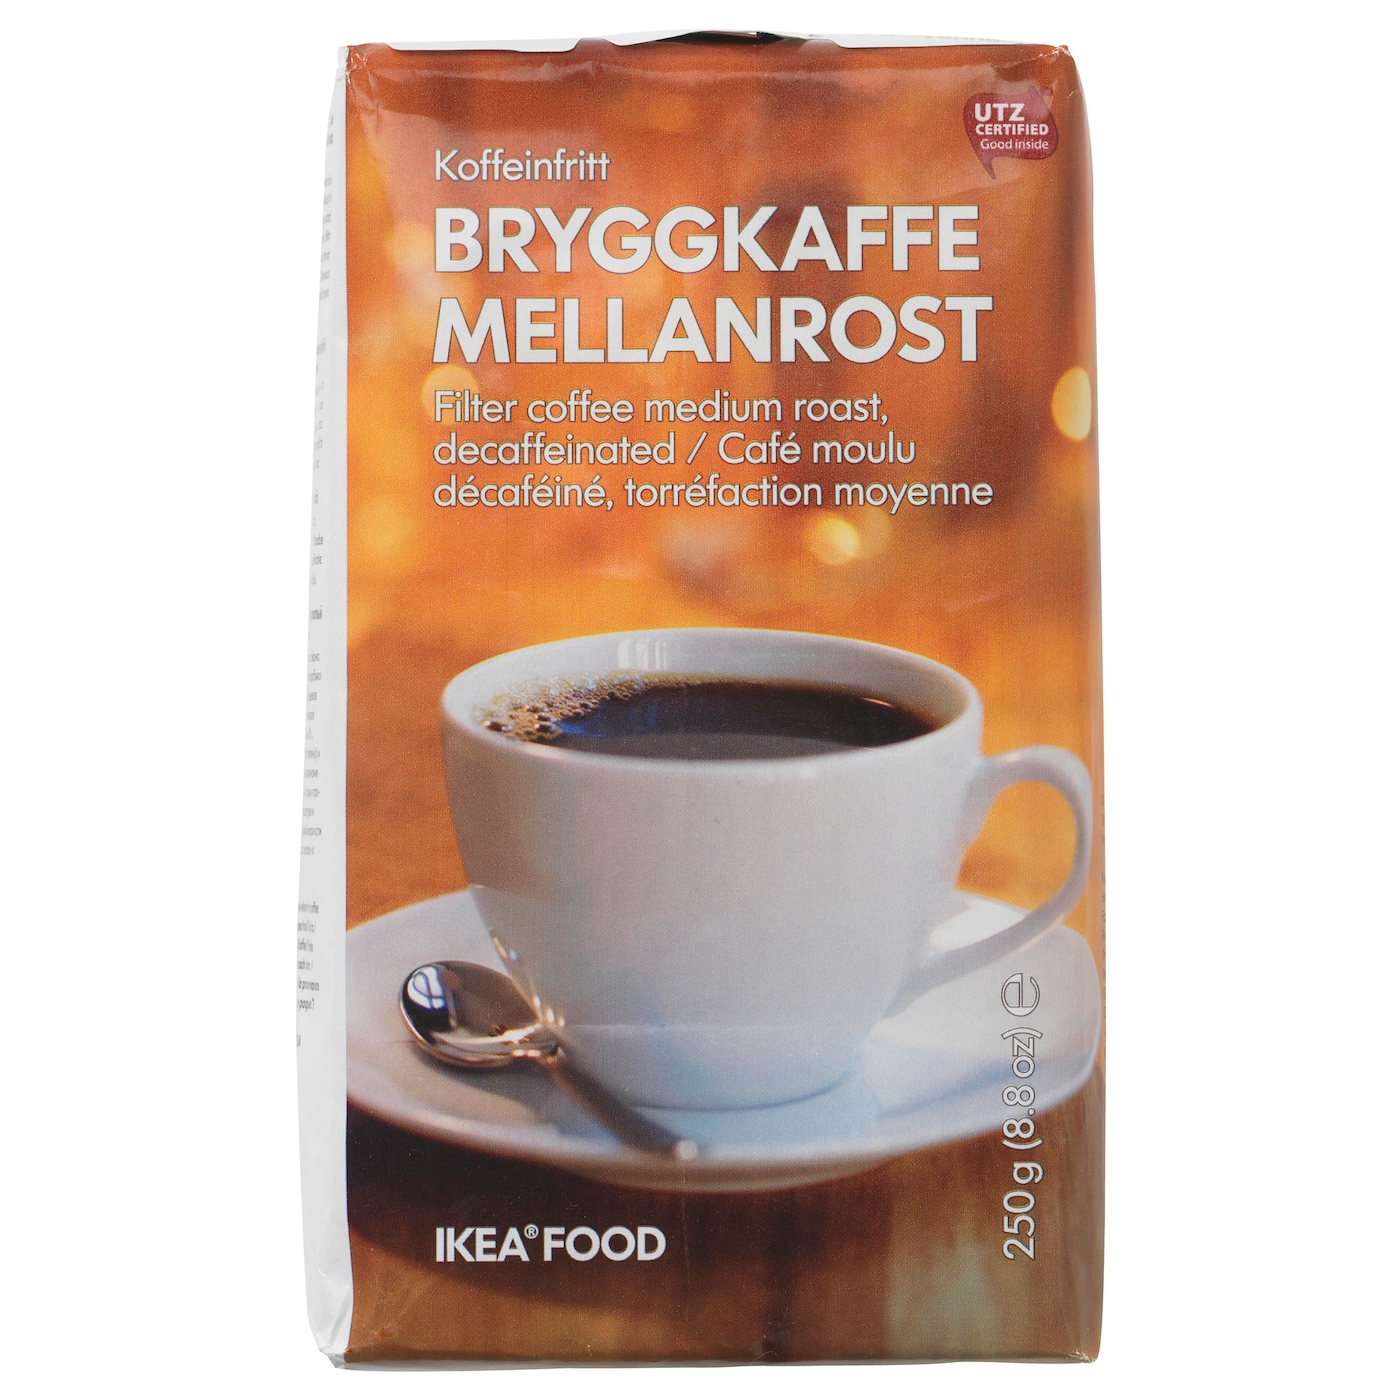 IKEA BRYGGKAFFE MELLANROST decaffeinated coffee